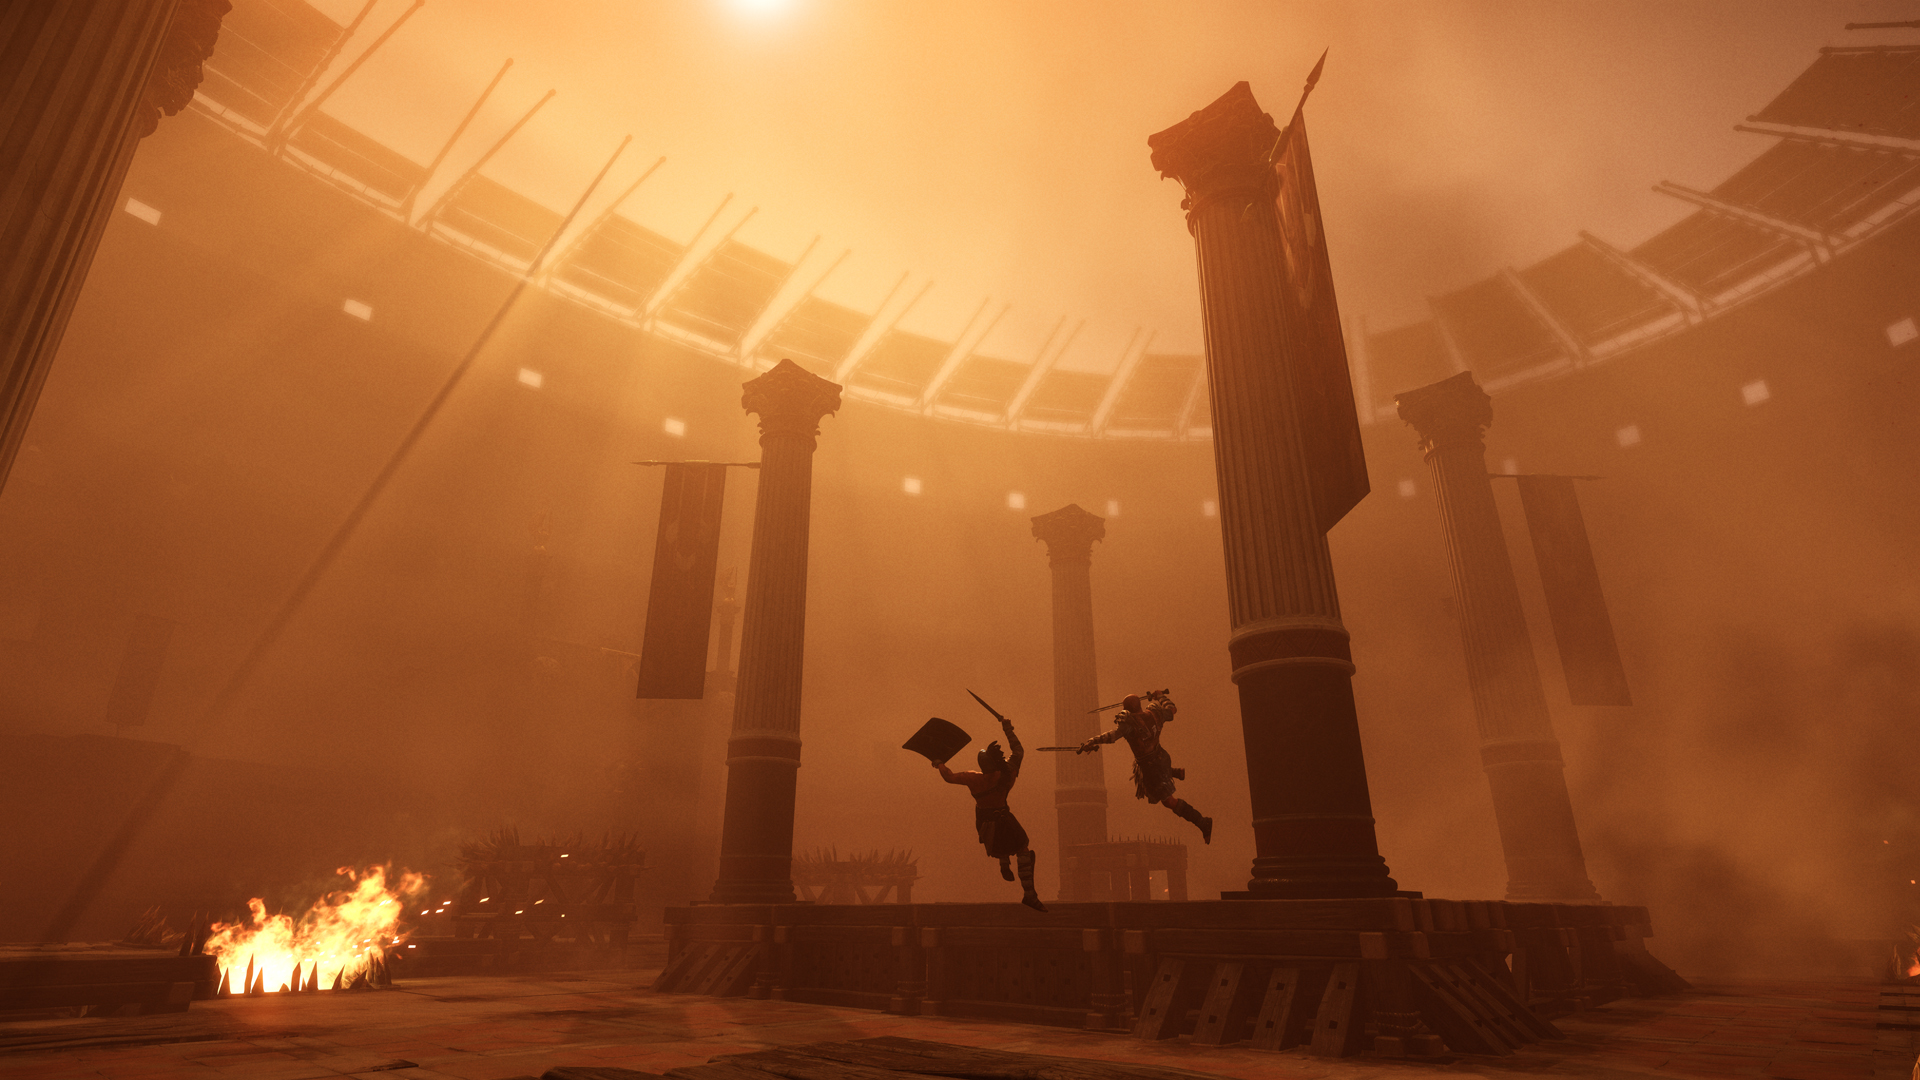 ryse son of rome sandstorm